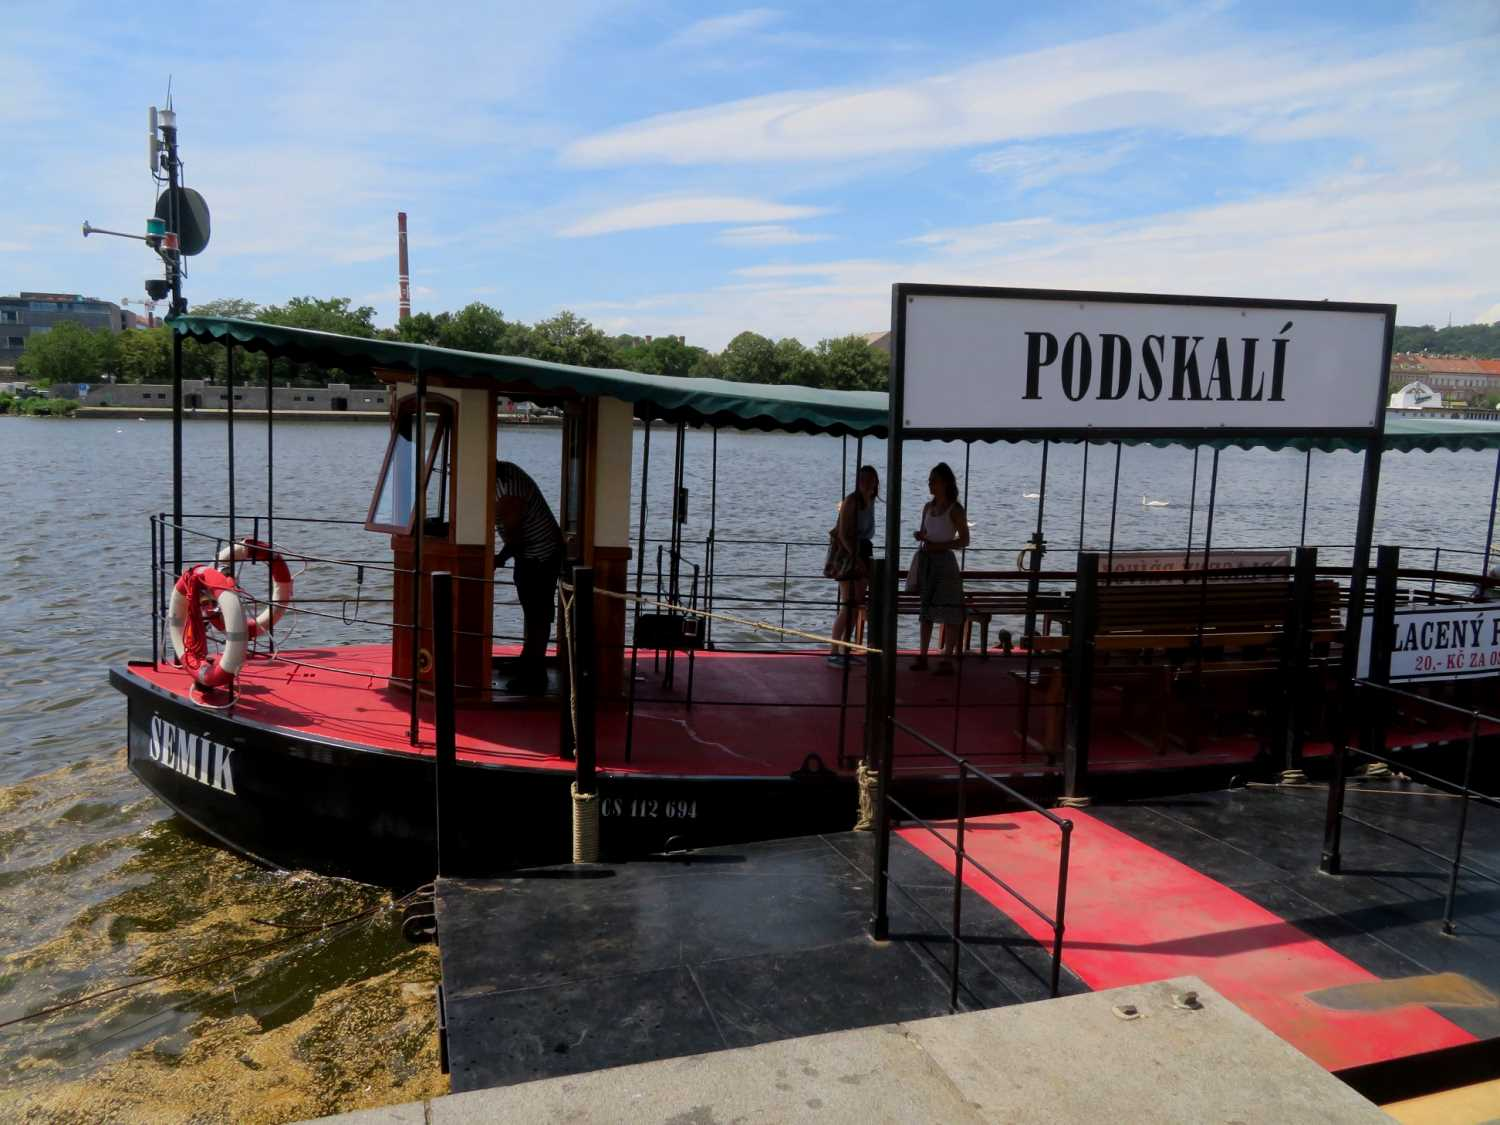 , New ferry service connects Prague's Náplavka and Smíchov waterfronts, Expats.cz Latest News & Articles - Prague and the Czech Republic, Expats.cz Latest News & Articles - Prague and the Czech Republic